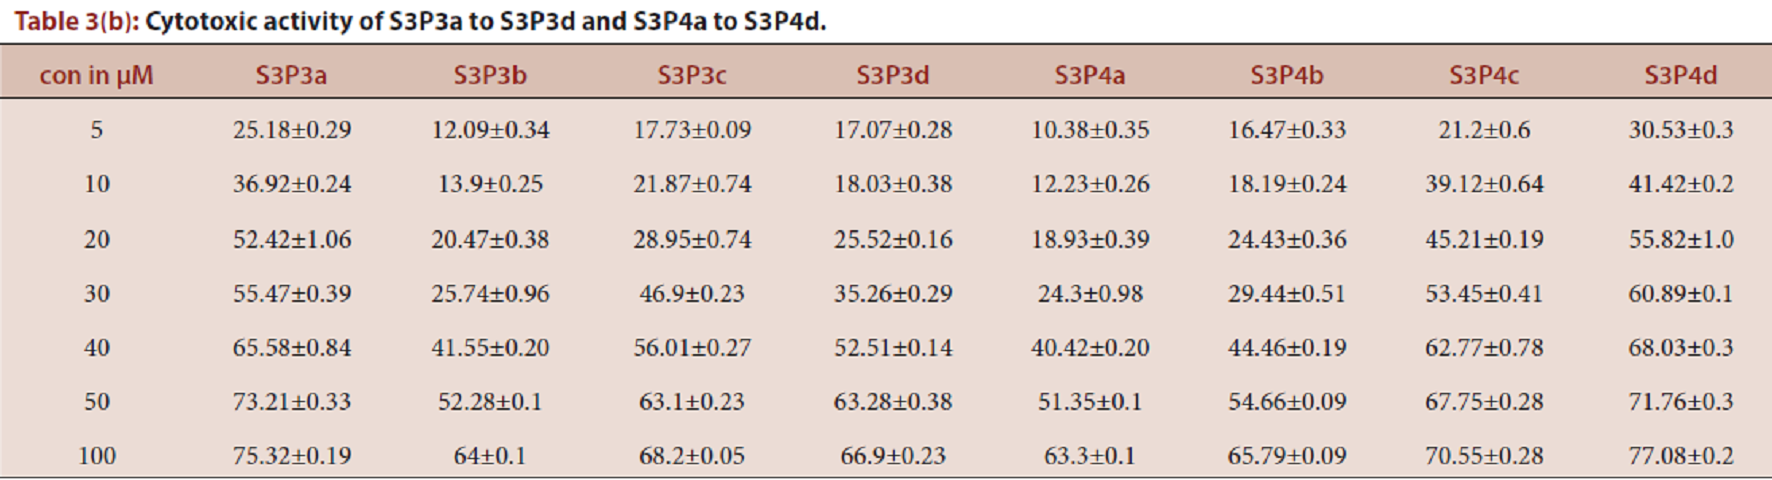 Table 3(b): Cytotoxic activity of S3P3a to S3P3d and S3P4a to S3P4d.